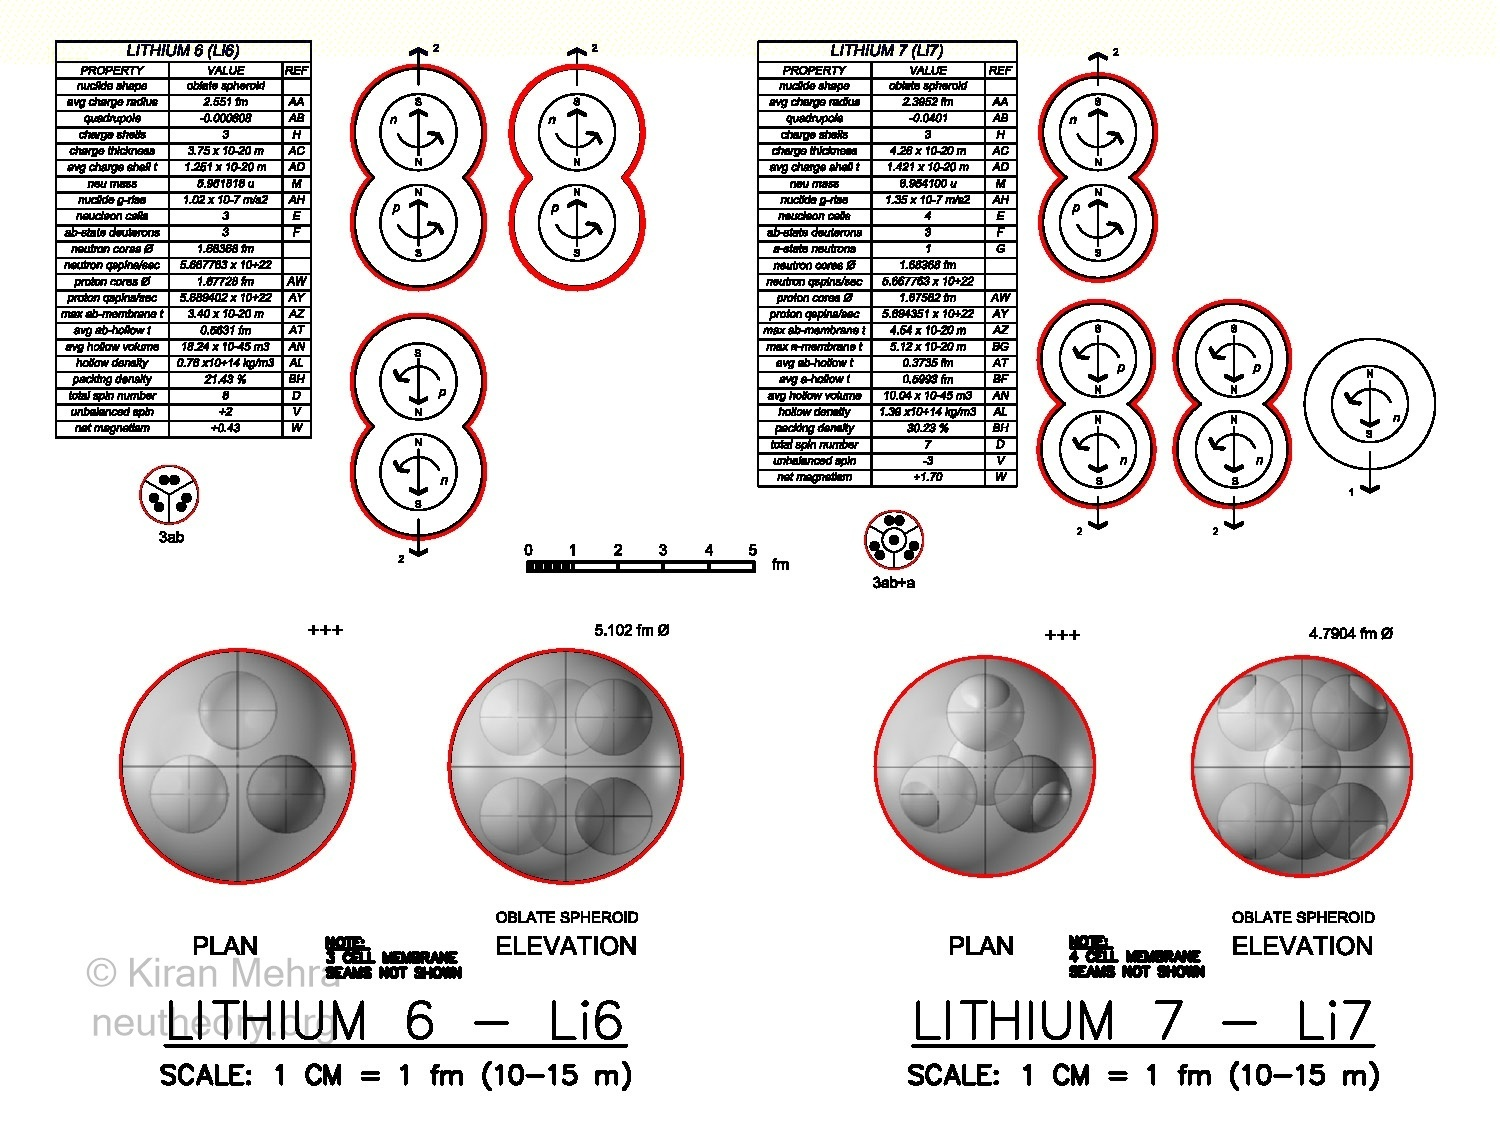 3D graphic images of deuteron and neutron cells clustering to form lithium-6 and lithium-7 nuclides